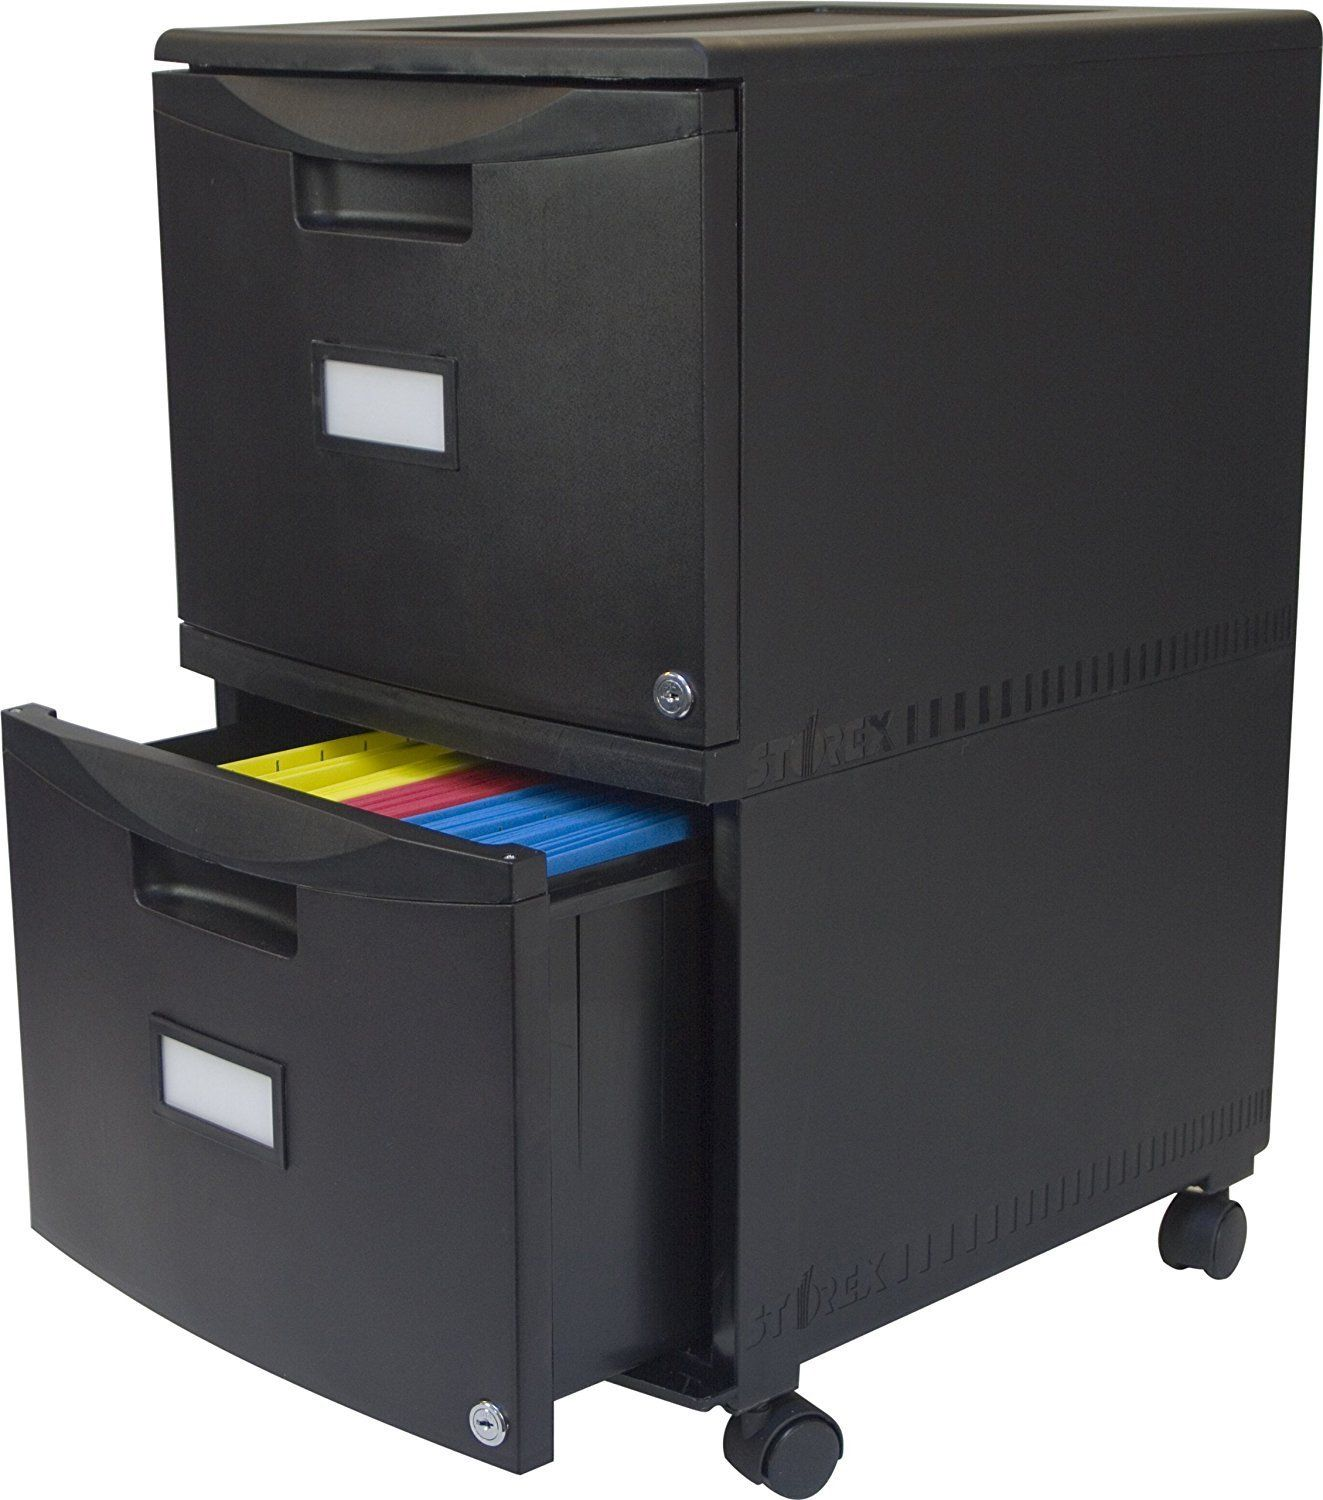 2 Drawer Mobile Filing Cabinet With Lock Letter Legal Size Filing Cabinet Plastic File Cabinet Drawers 2 drawer legal size file cabinet